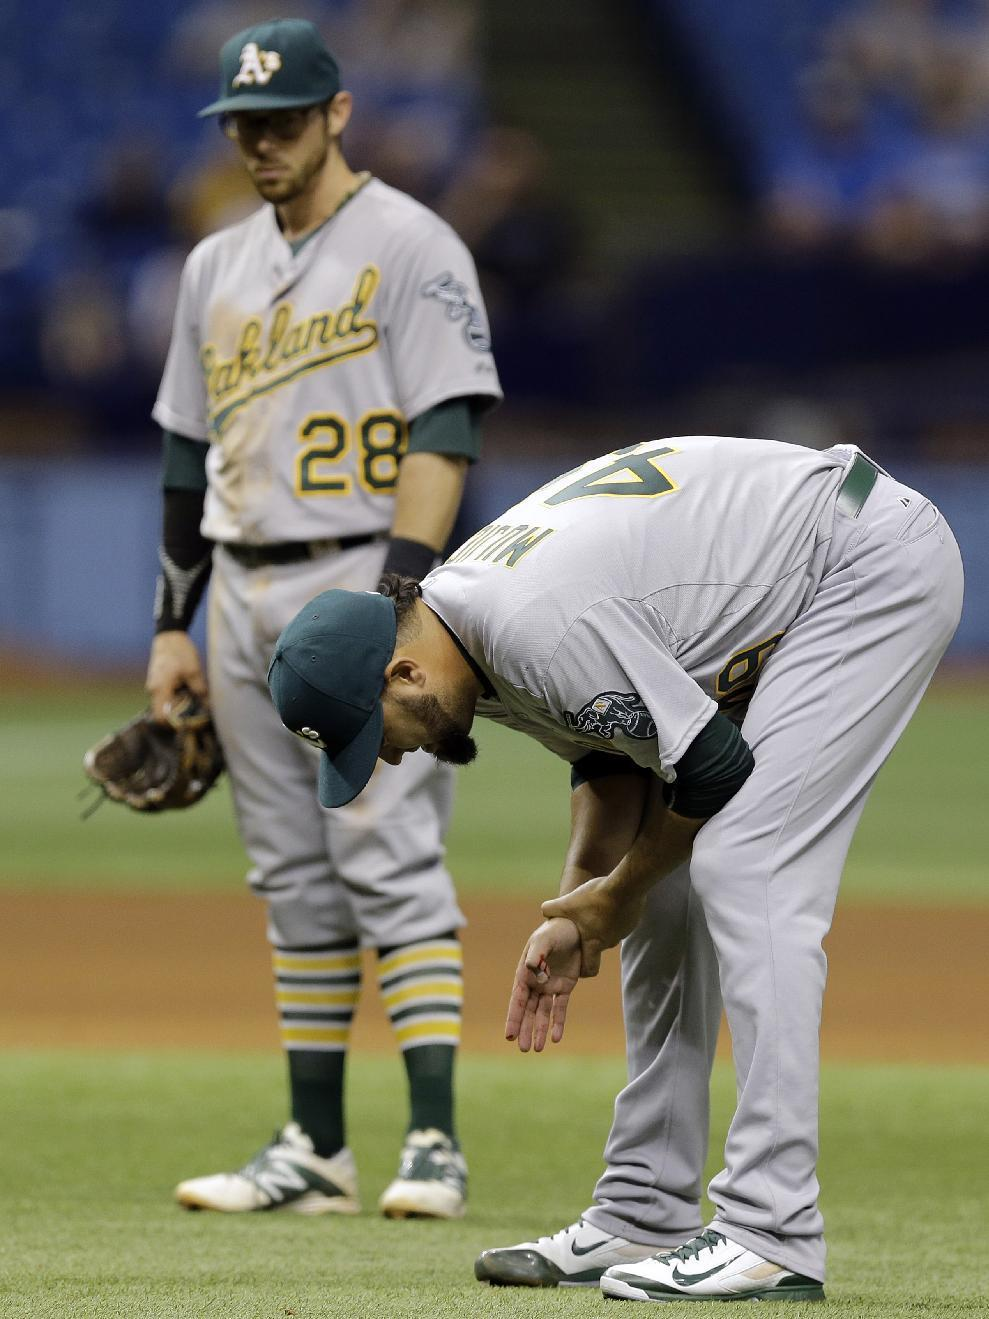 No immediate surgery for A's Coco Crisp